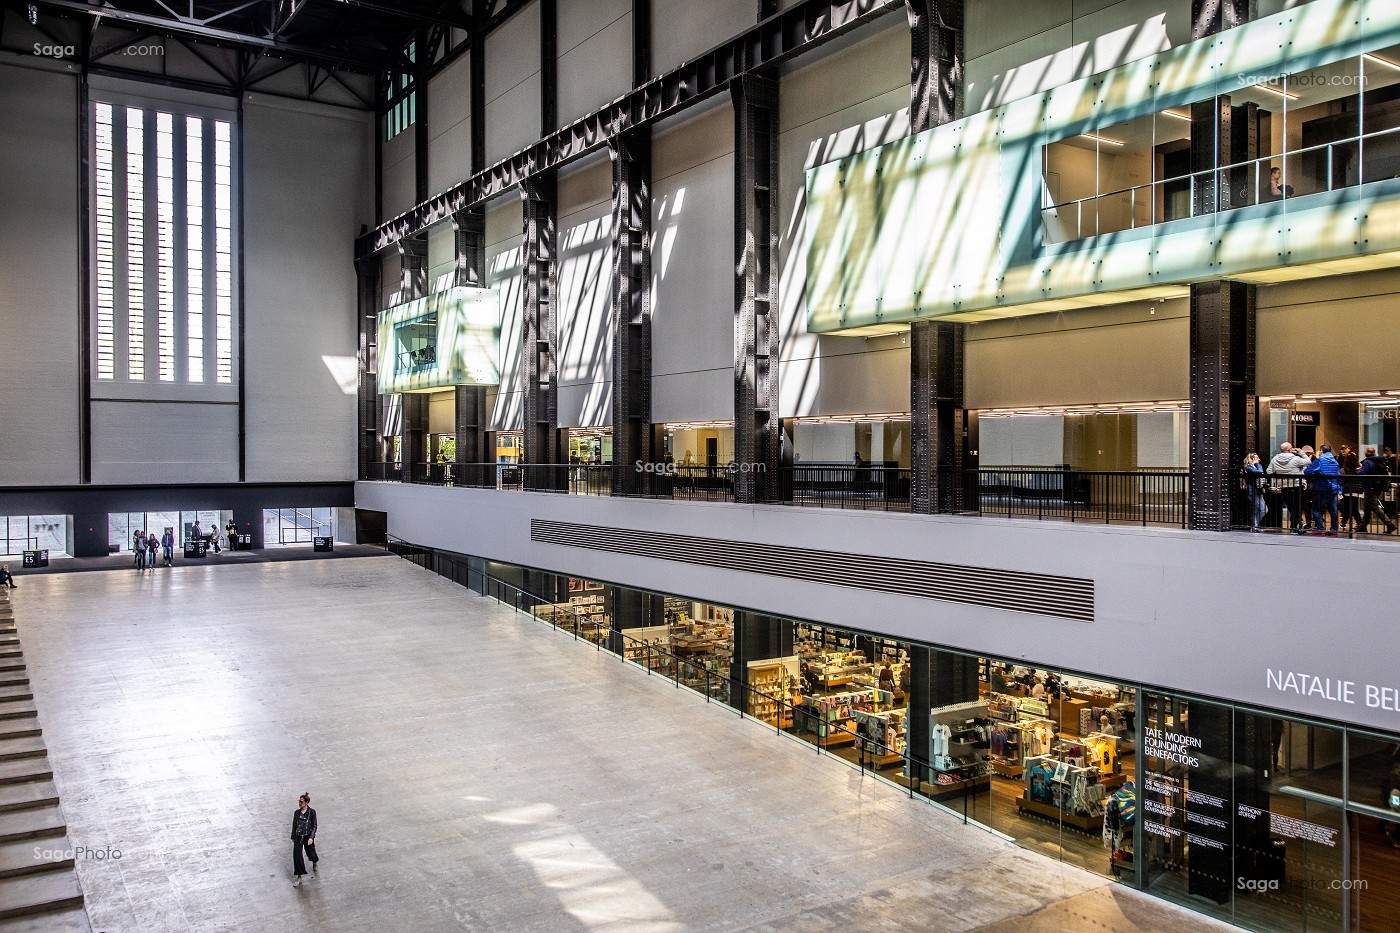 TATE MODERN, MUSEE D'ART MODERNE, LONDRES, ANGLETERRE